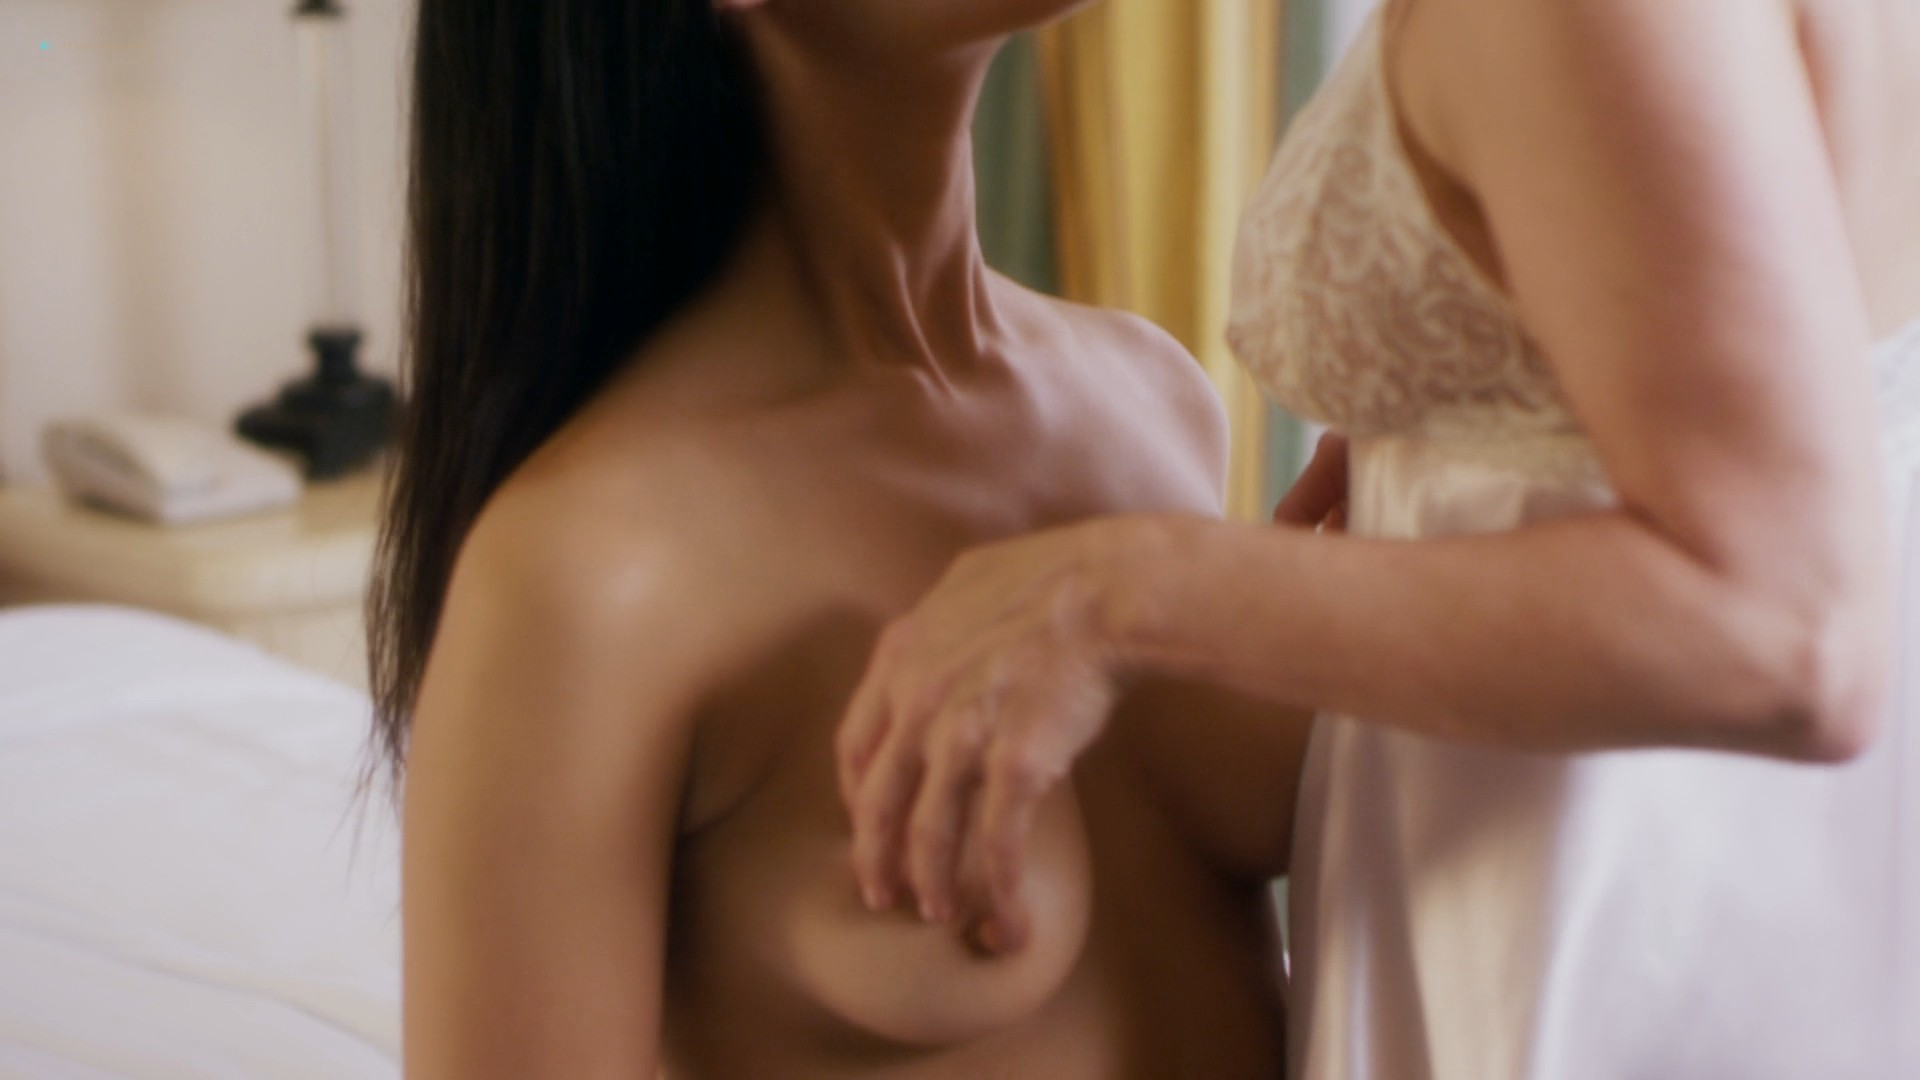 Jessica Clark nude lesbian sex with Barbara Niven nude boobs and butt - A Perfect Ending (2012) HD 1080p (7)